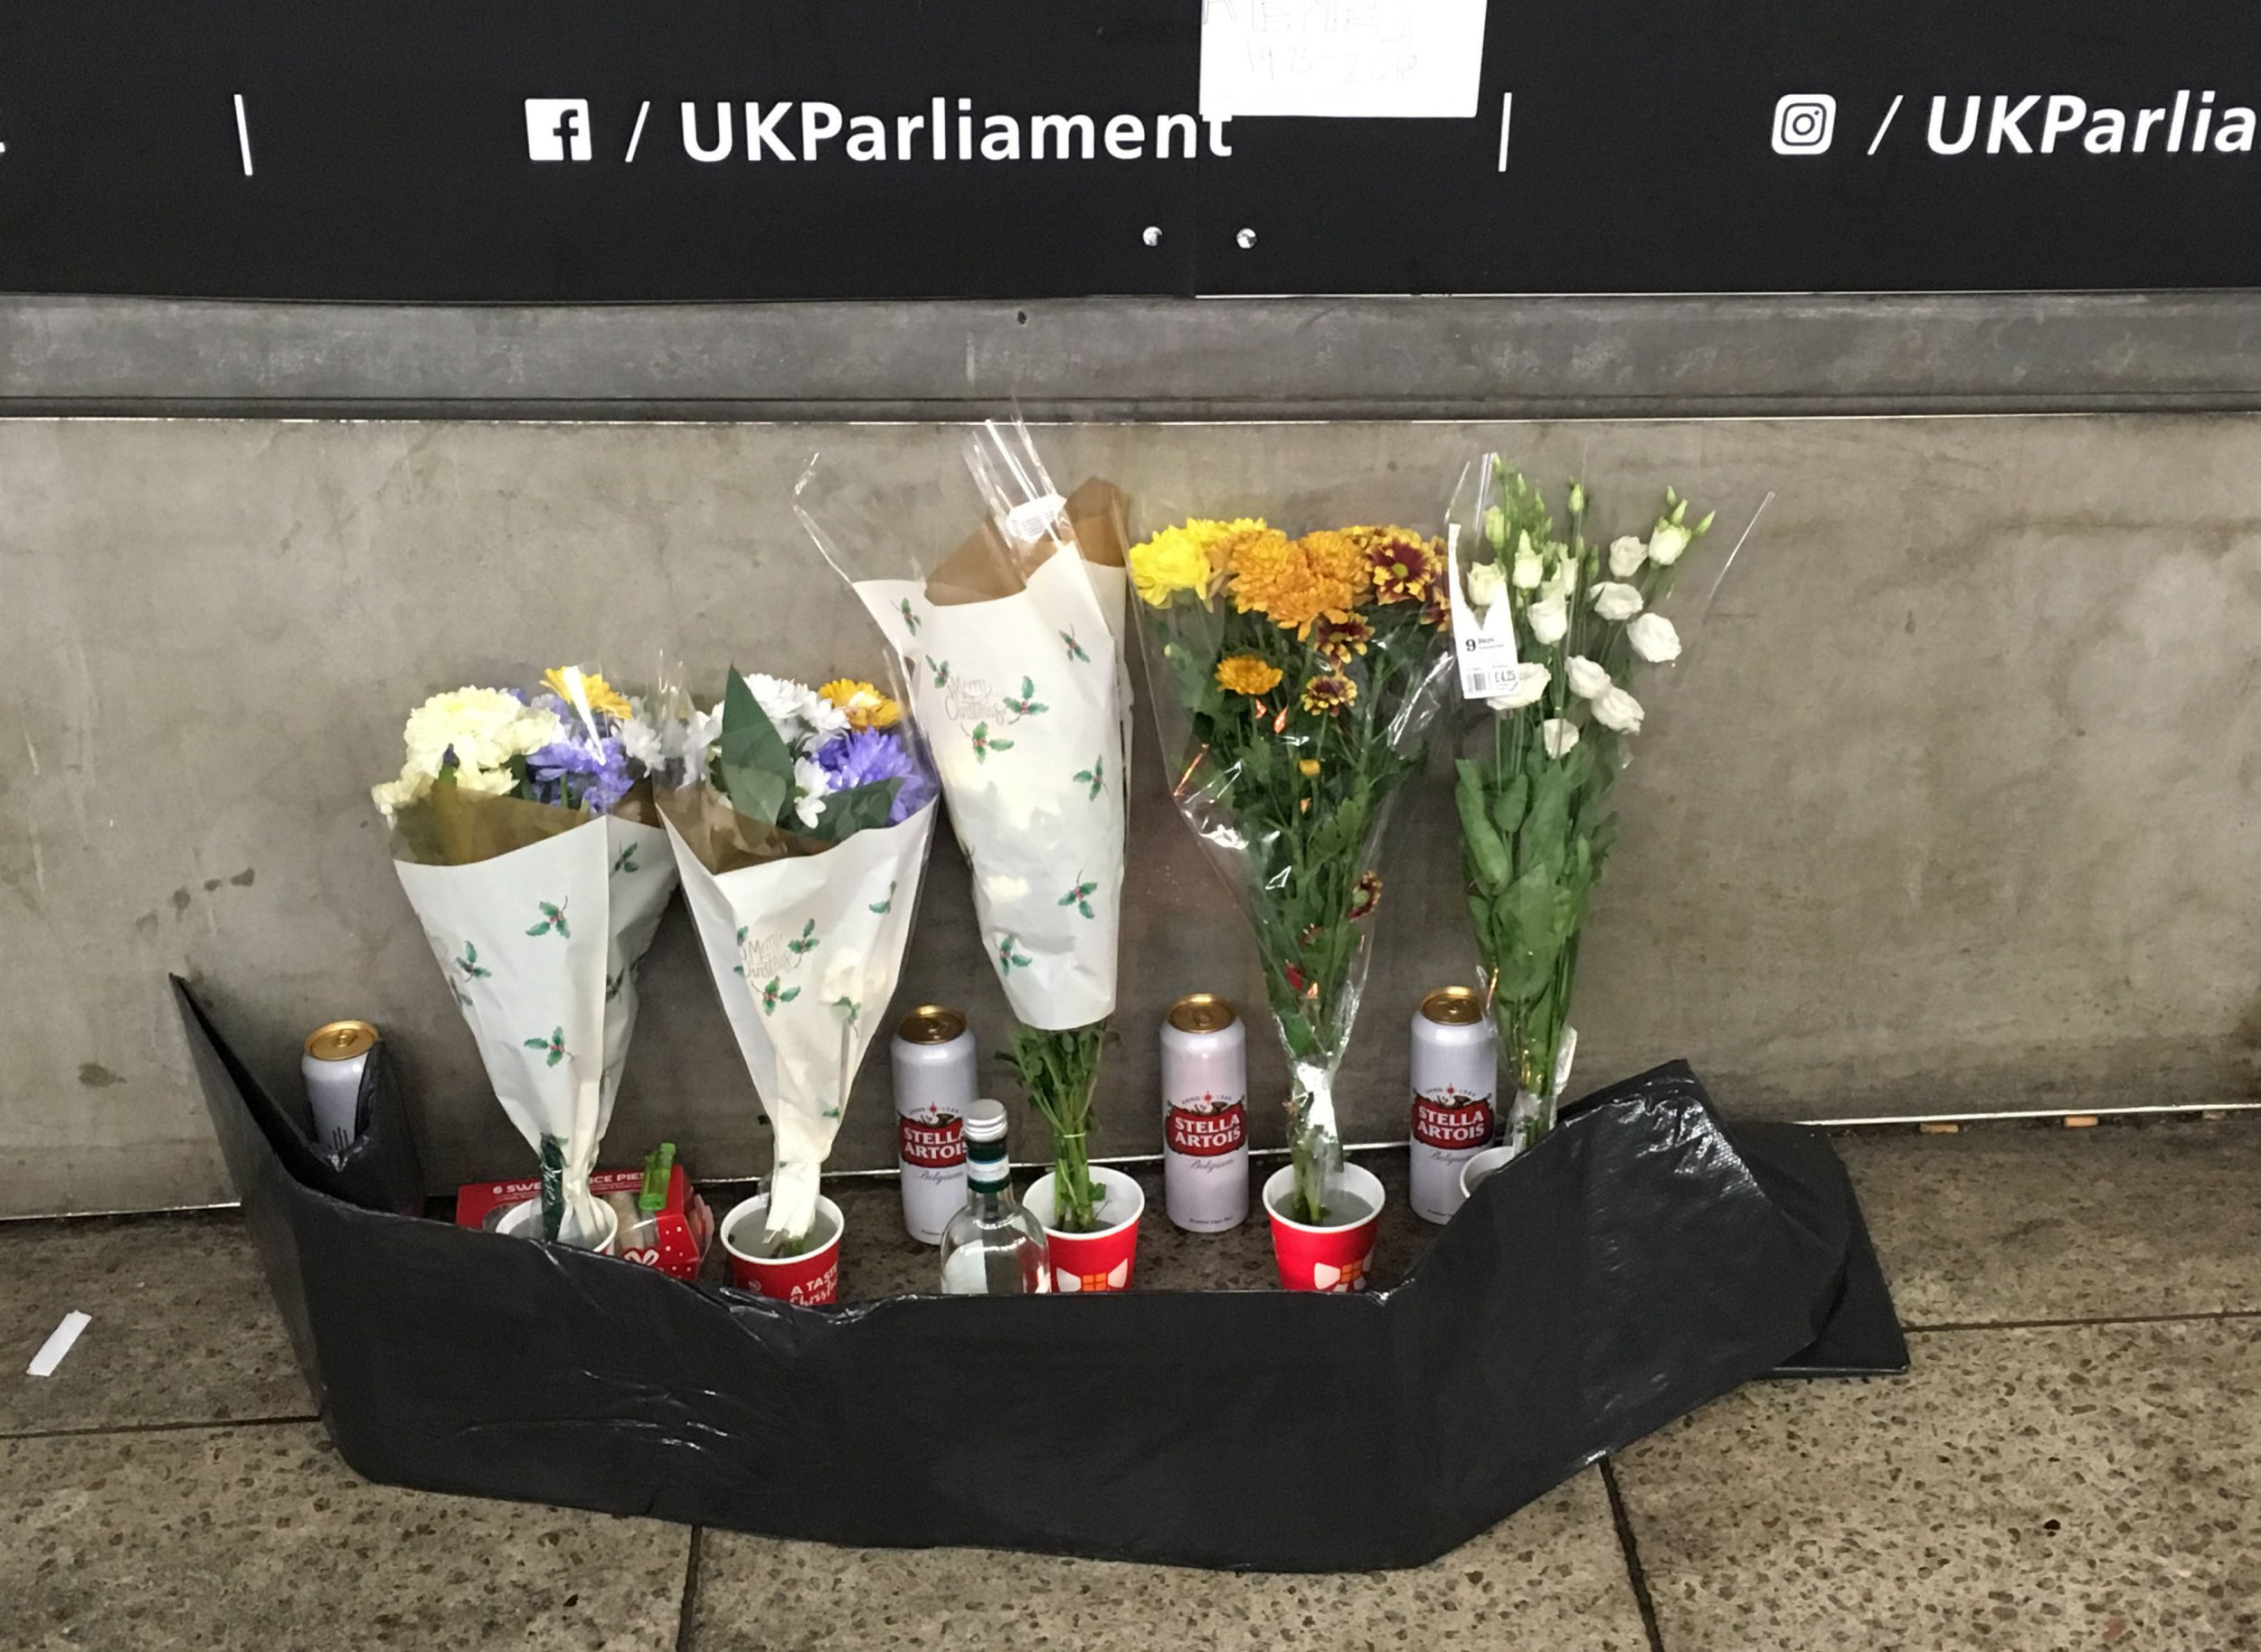 Floral tributes lay outside the Parliament entrance near Westminster underground station, where homeless man known as Gyula Remes, was found dying outside the entrance to the Houses of Parliament. PRESS ASSOCIATION Photo. Picture date: Wednesday December 19, 2018. British Transport Police were called to Westminster Underground station at about 11pm on December 18 and besides giving him first aid, Mr Remes died at a Central London hospital in the early hours of December 19. See PA story POLICE Homeless. Photo credit should read: Jasmine Cameron-Chileshe/PA Wire